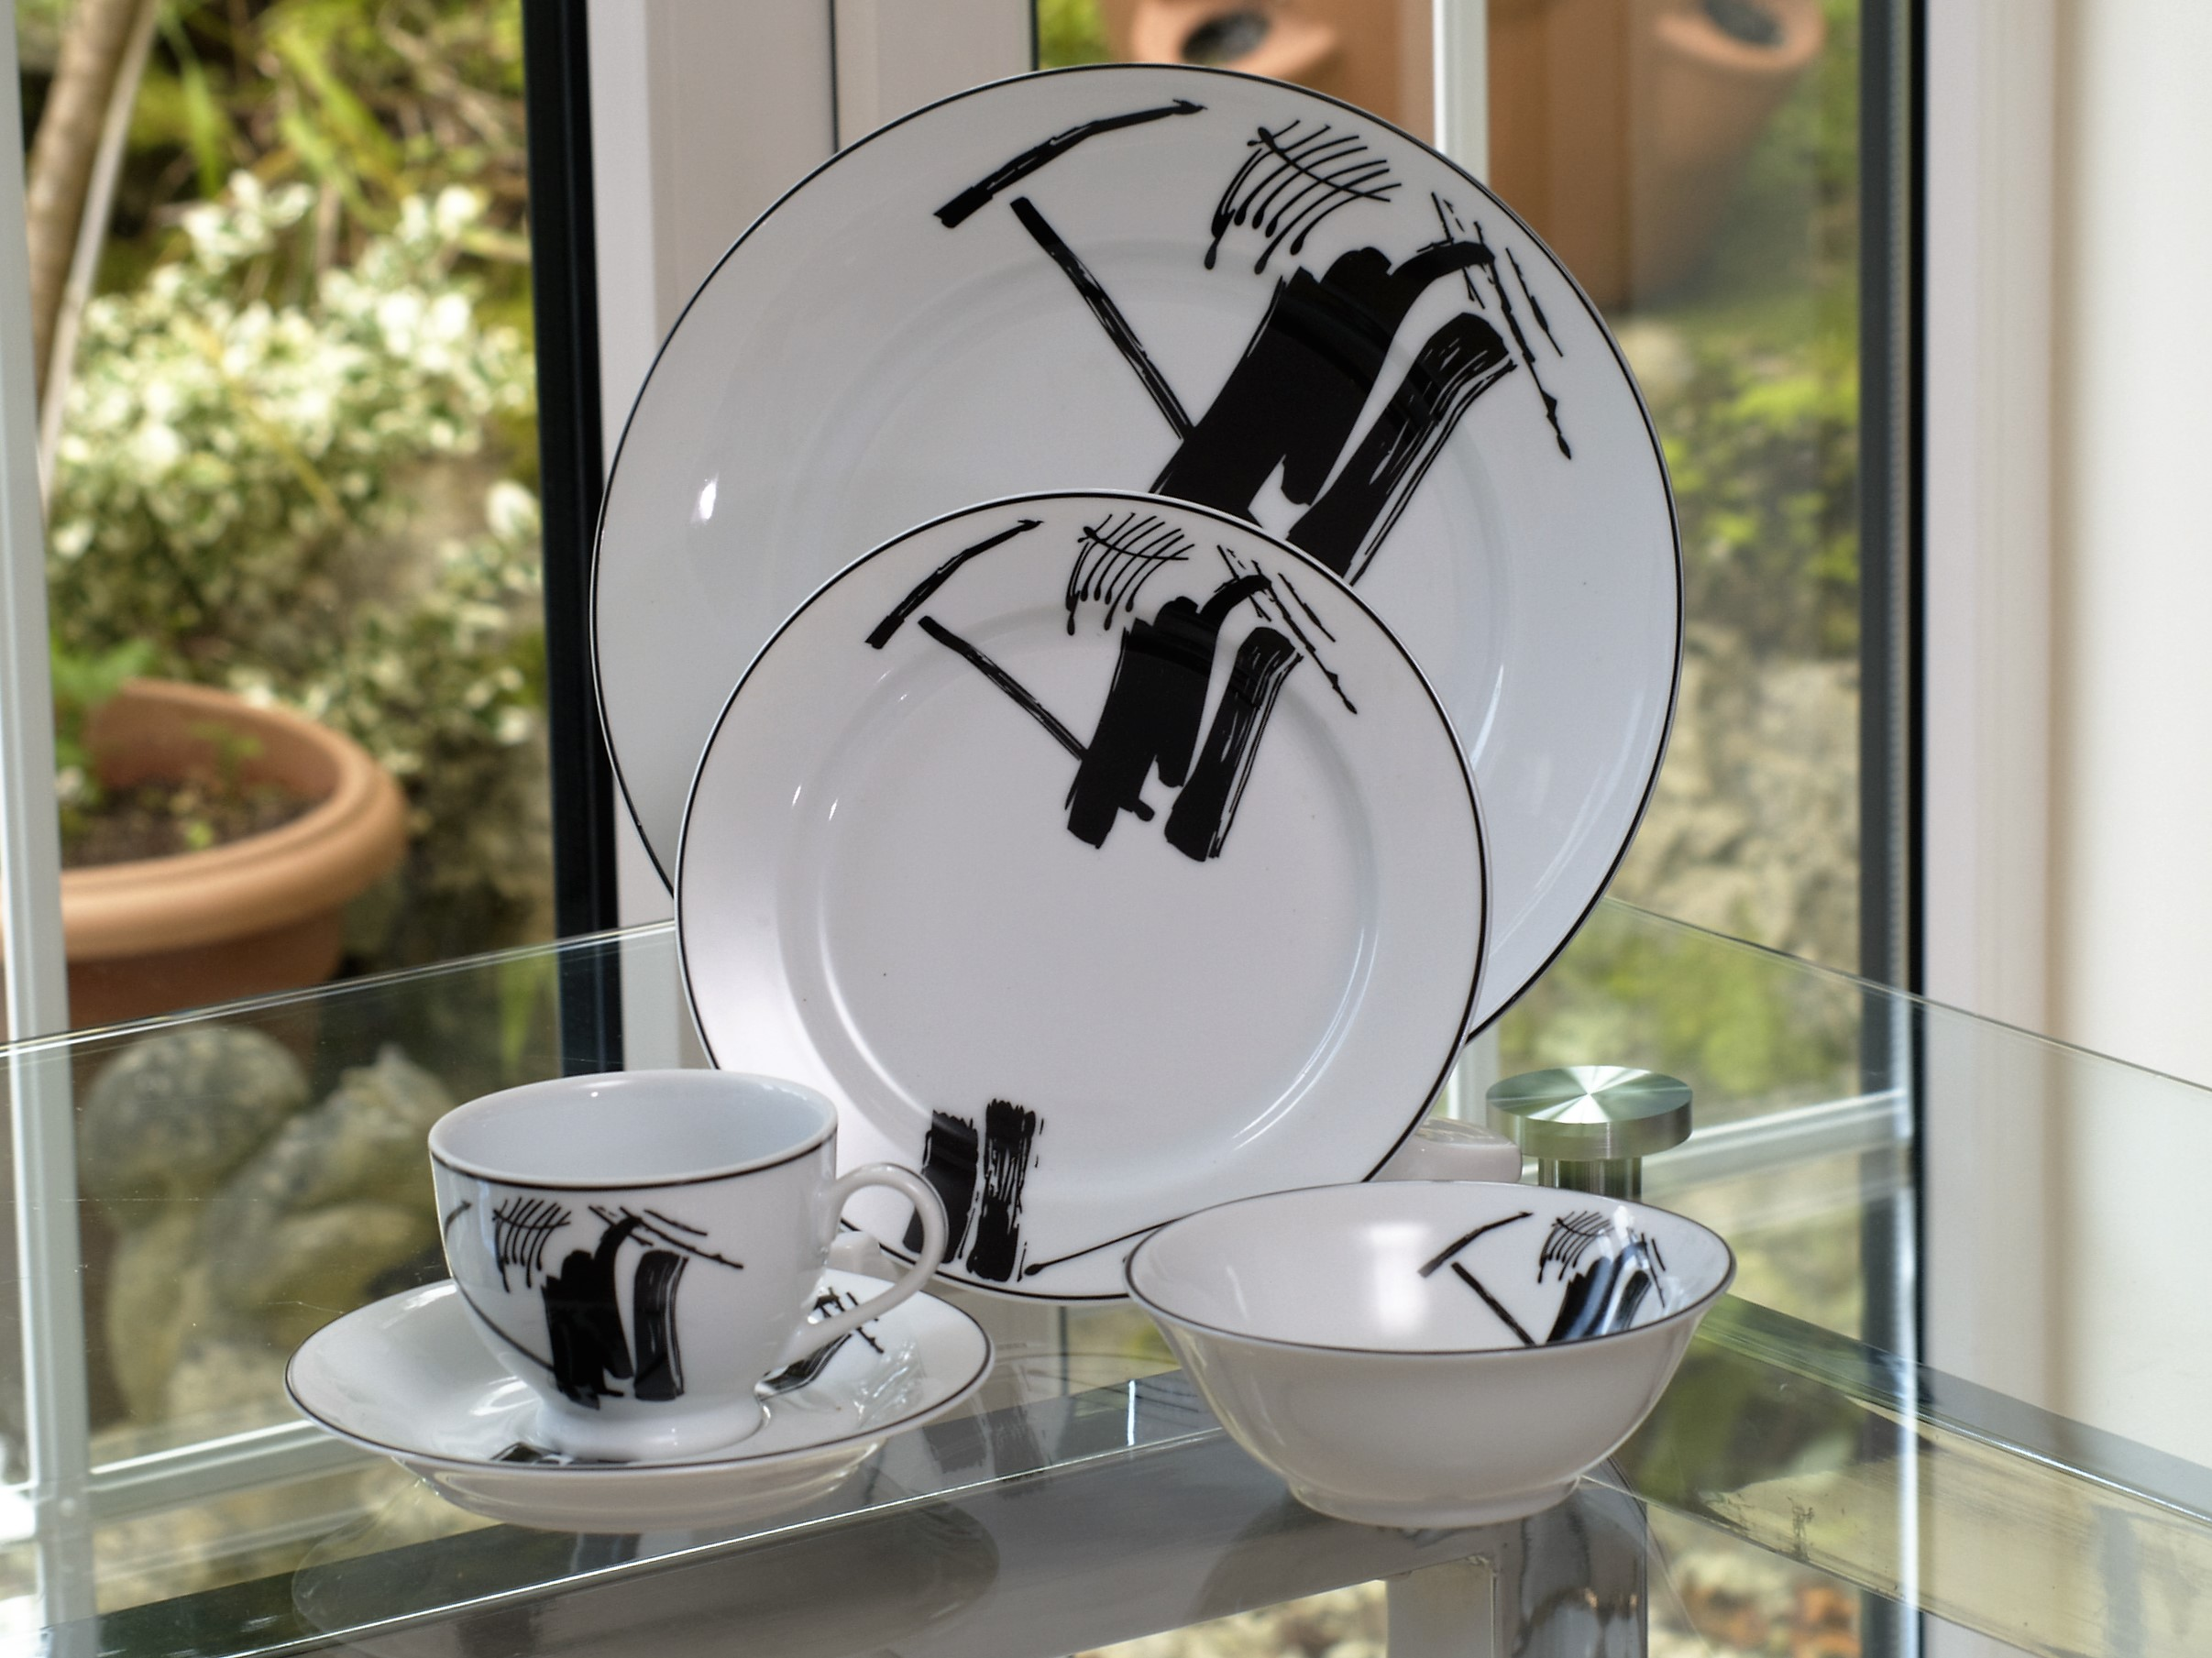 ABSTRACT 28 PIECE DINNER SERVICE